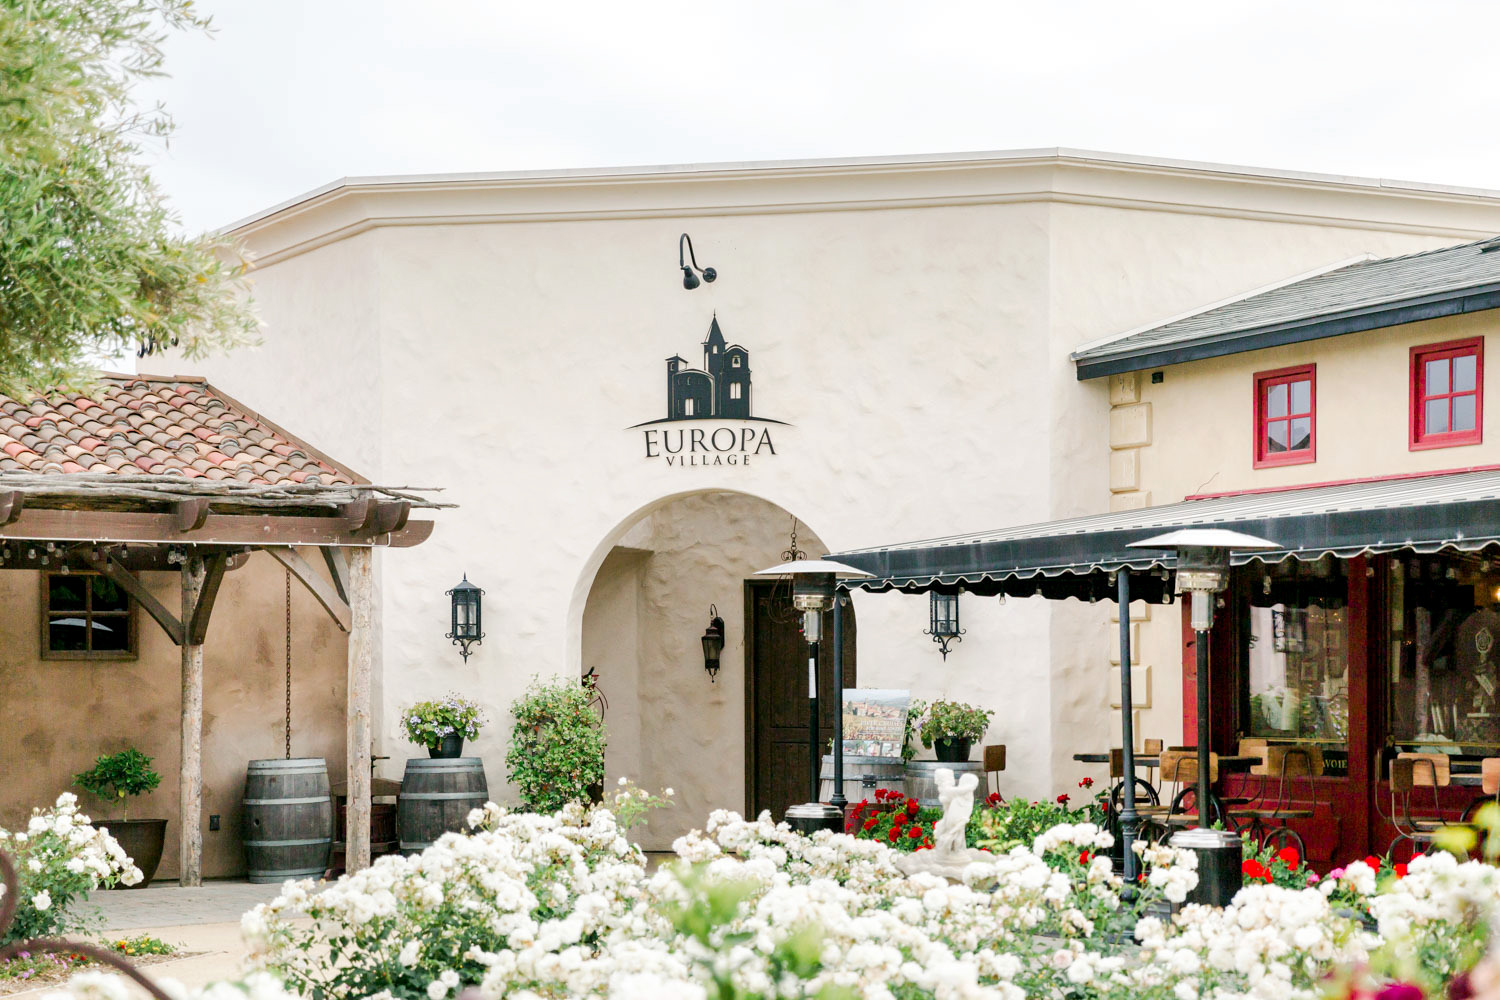 European Wedding Venues in San Diego: Europa Village